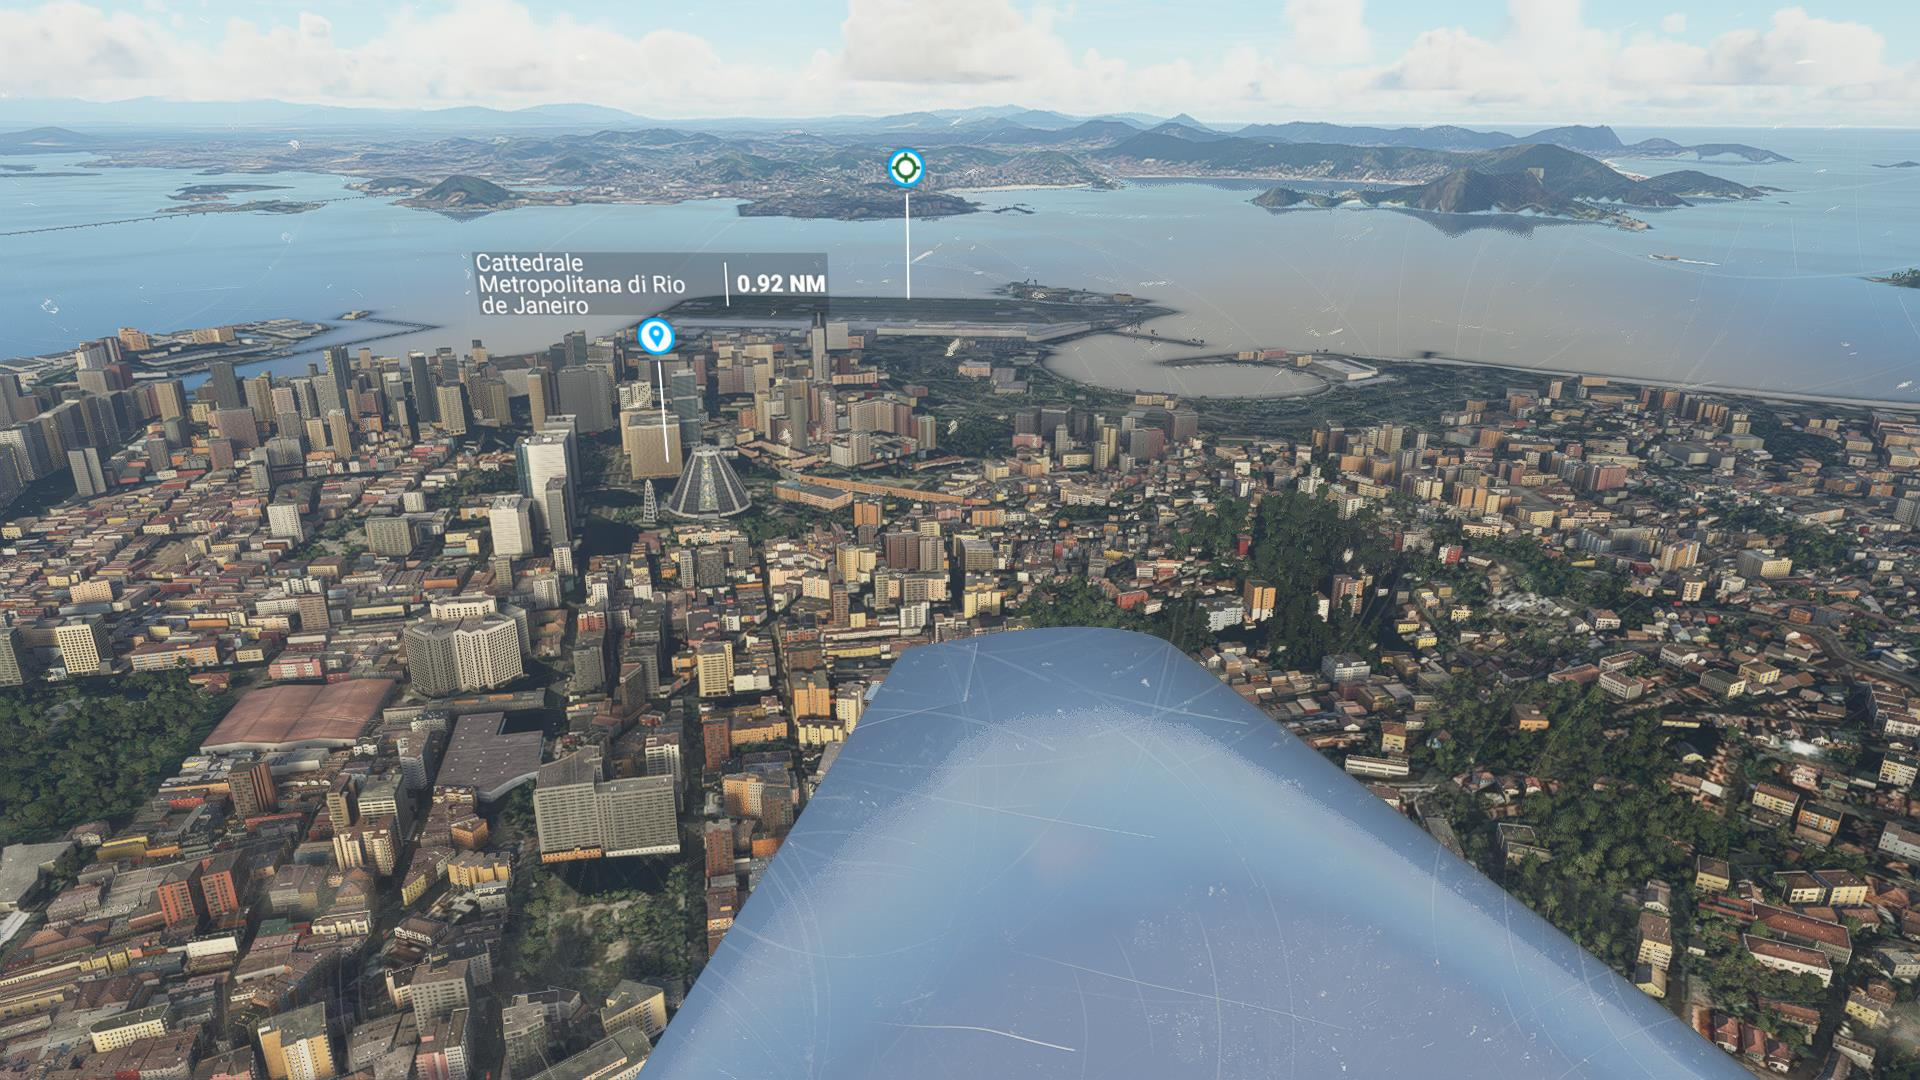 https://vivendobyte.blob.core.windows.net/57793/Microsoft Flight Simulator 13_01_2021 19_50_40.jpg